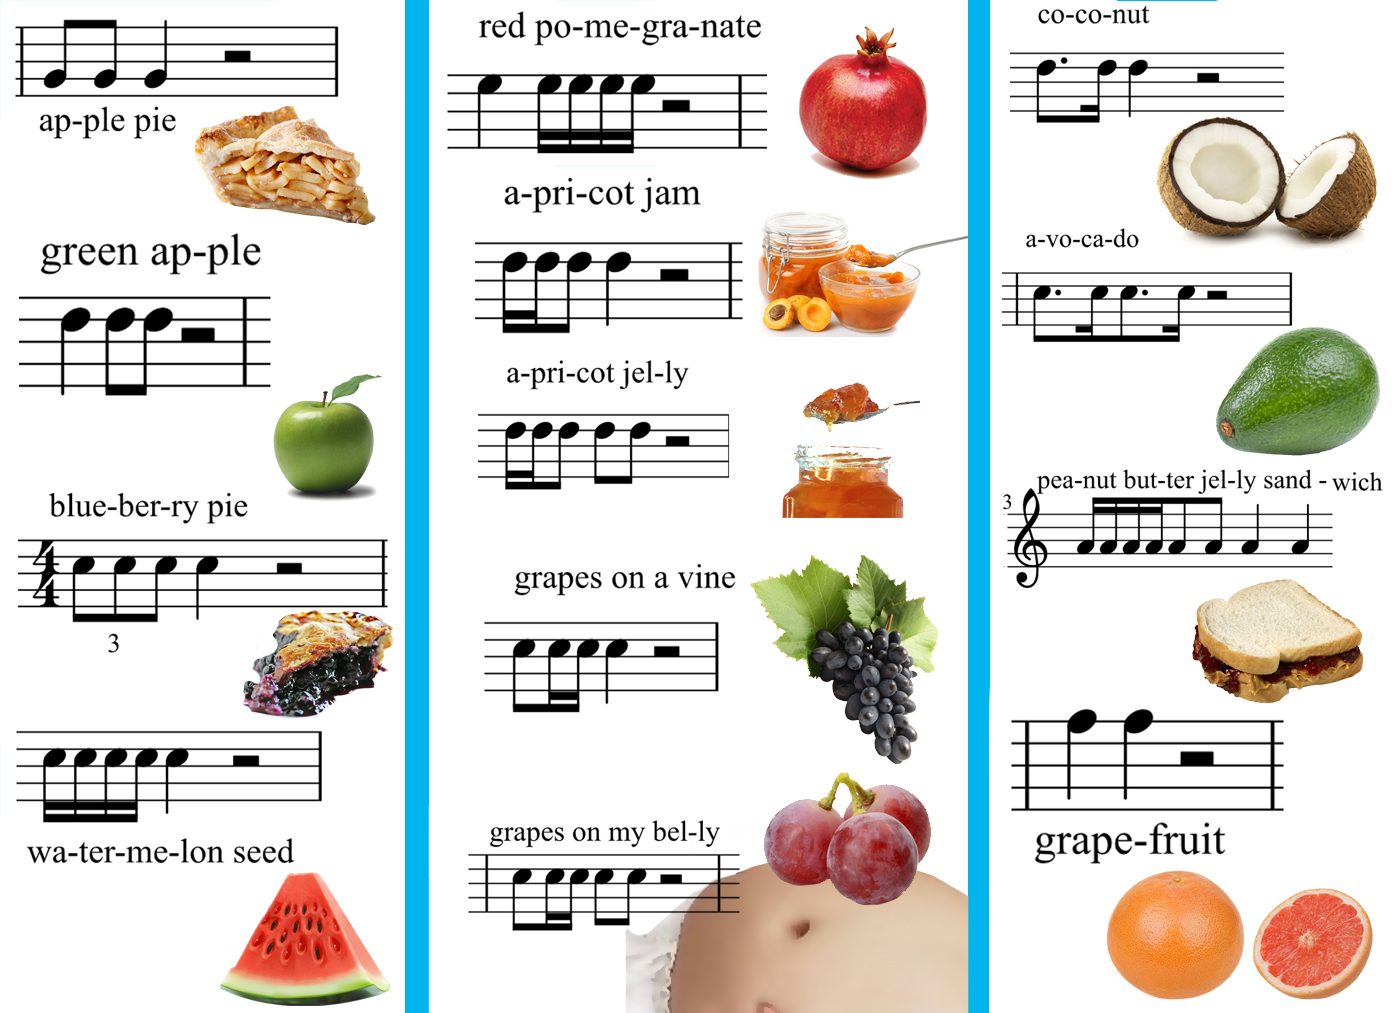 Image result for mnemonic chart rhythm fruit